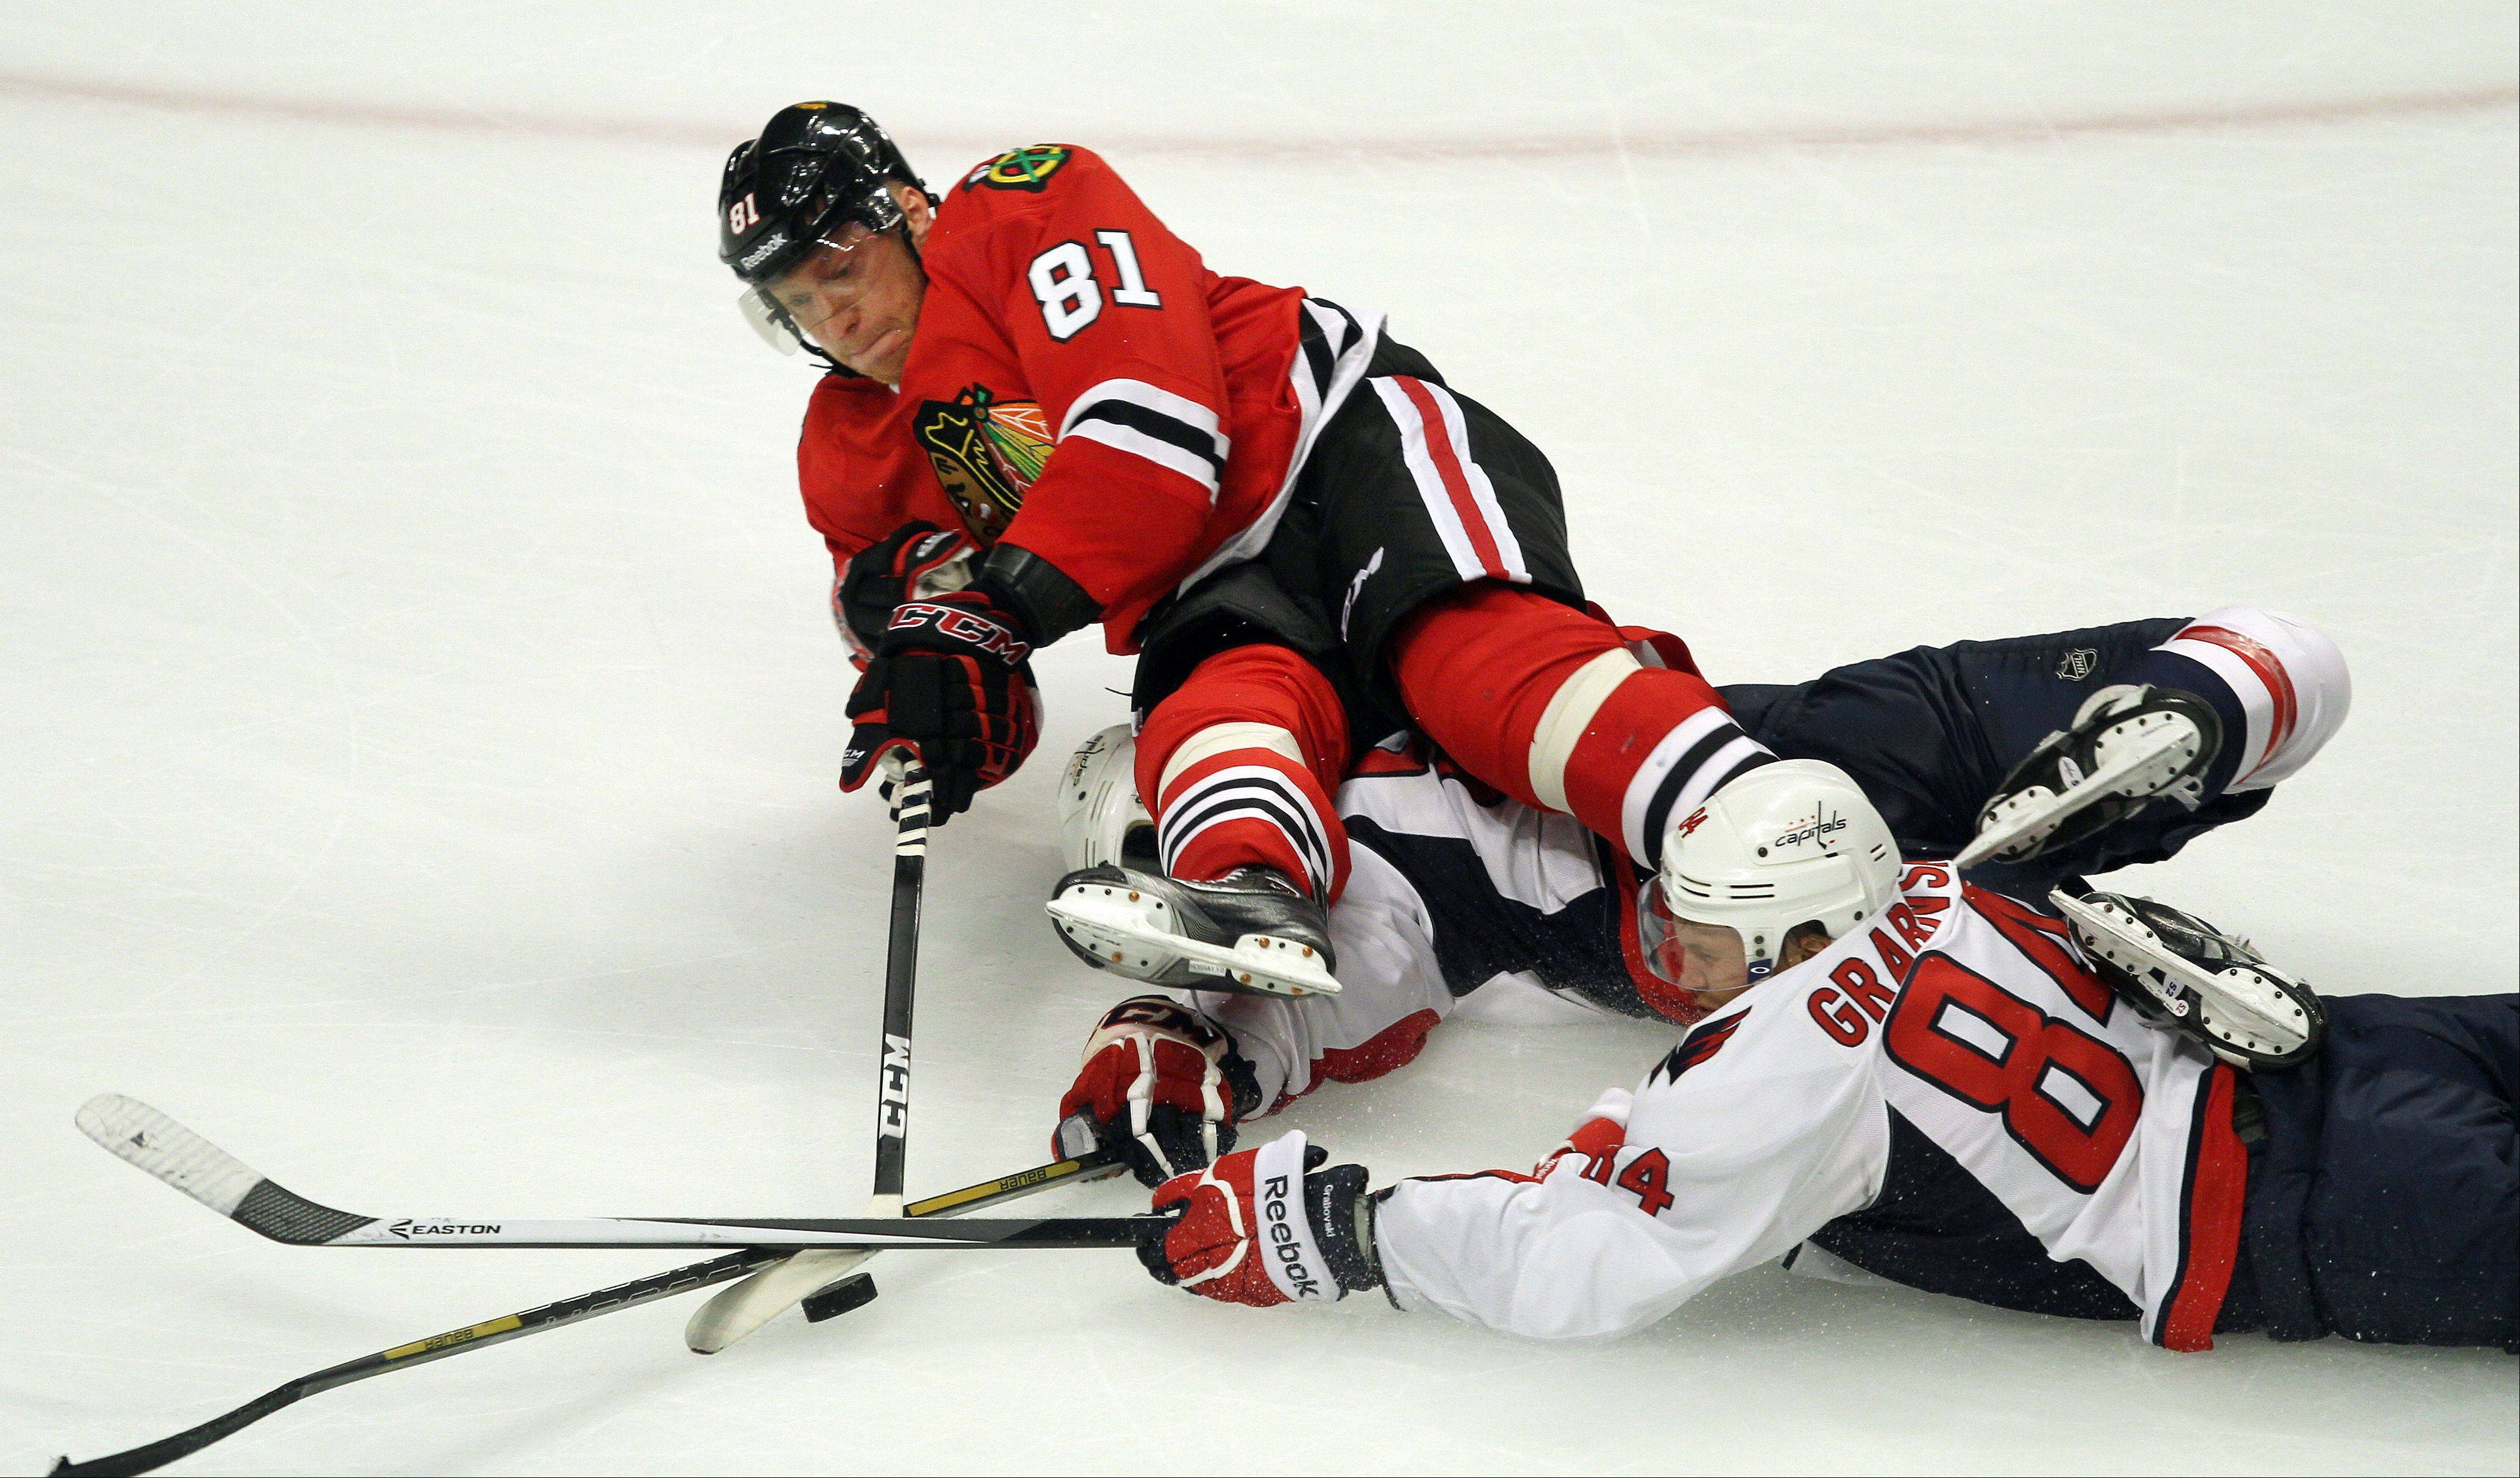 Chicago Blackhawks right wing Marian Hossa is taken down on an open net breakaway by Washington Capitals center Mikhail Grabovski .